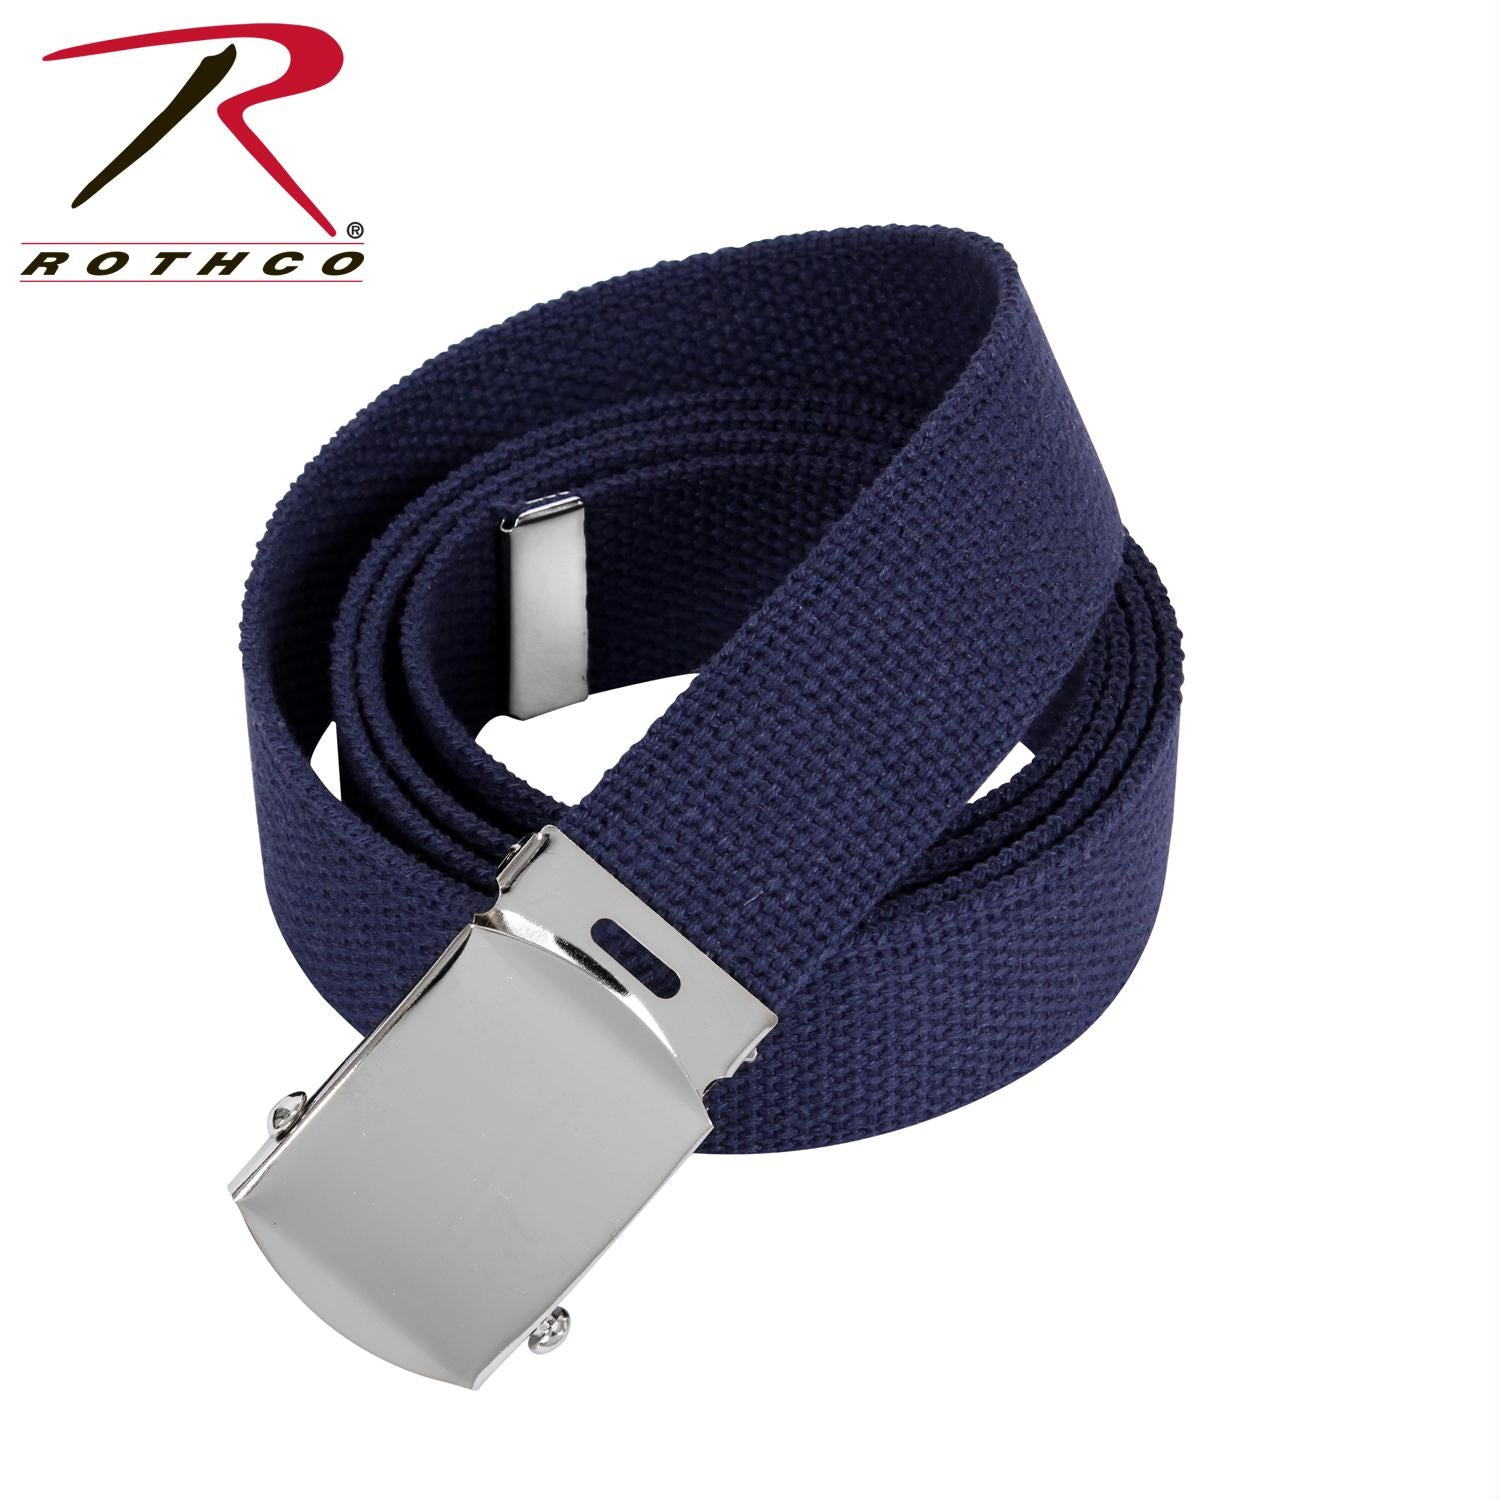 Rothco 54 Inch Military Web Belts - Chrome / Navy Blue